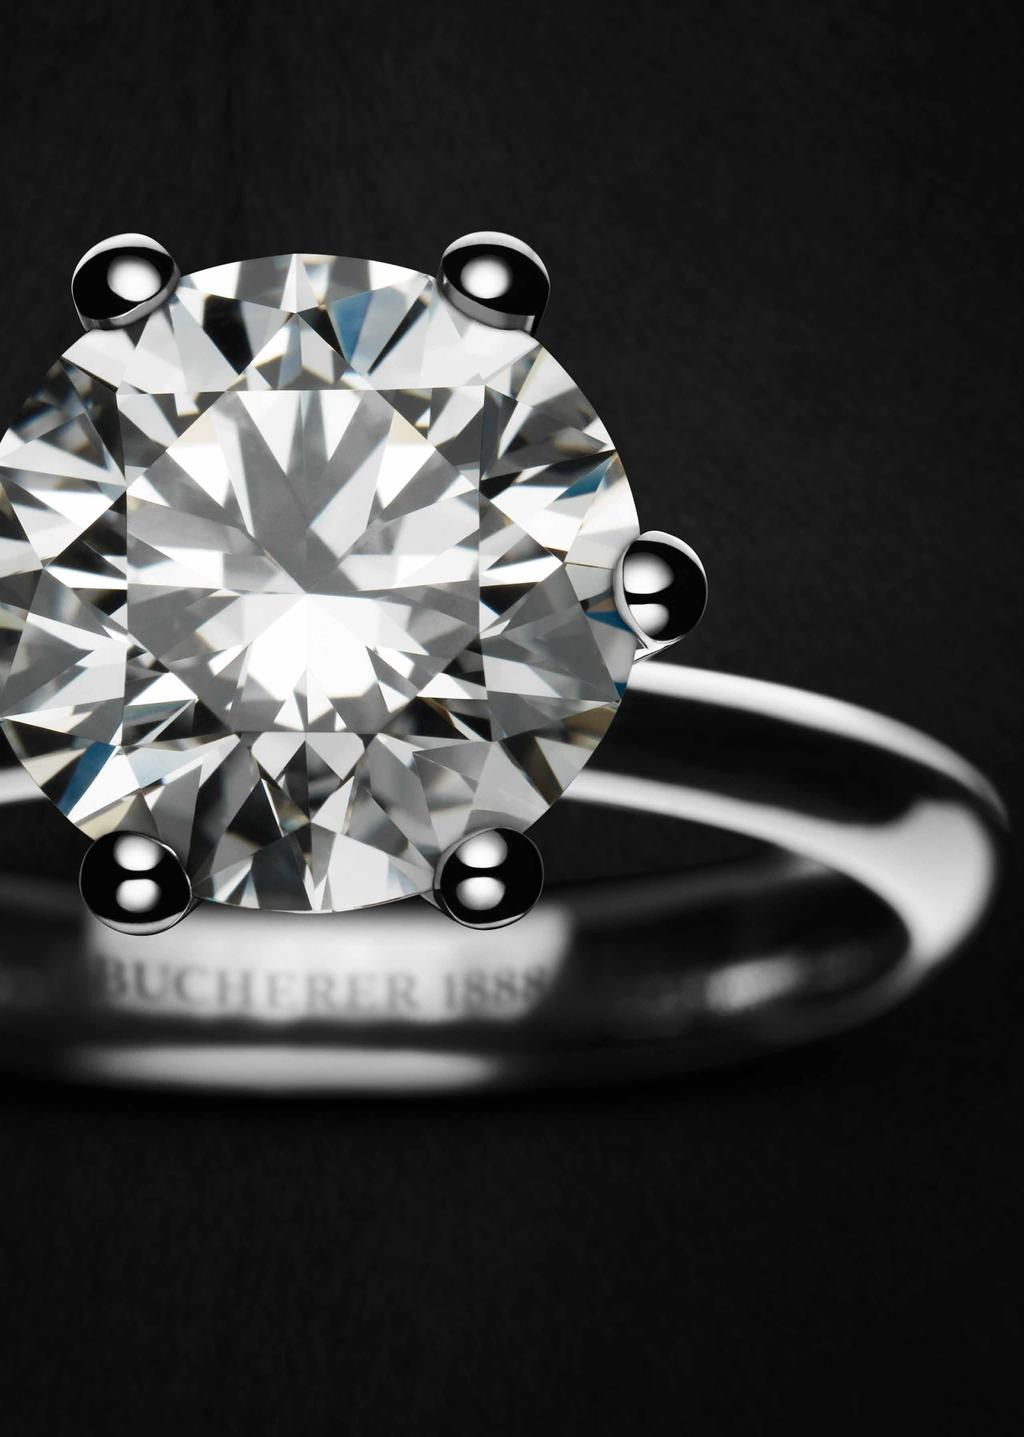 1888 A PERFECT DIAMOND WITH A SIMPLE DESIGN The pure, simple design of the 1888 solitaire ring created by